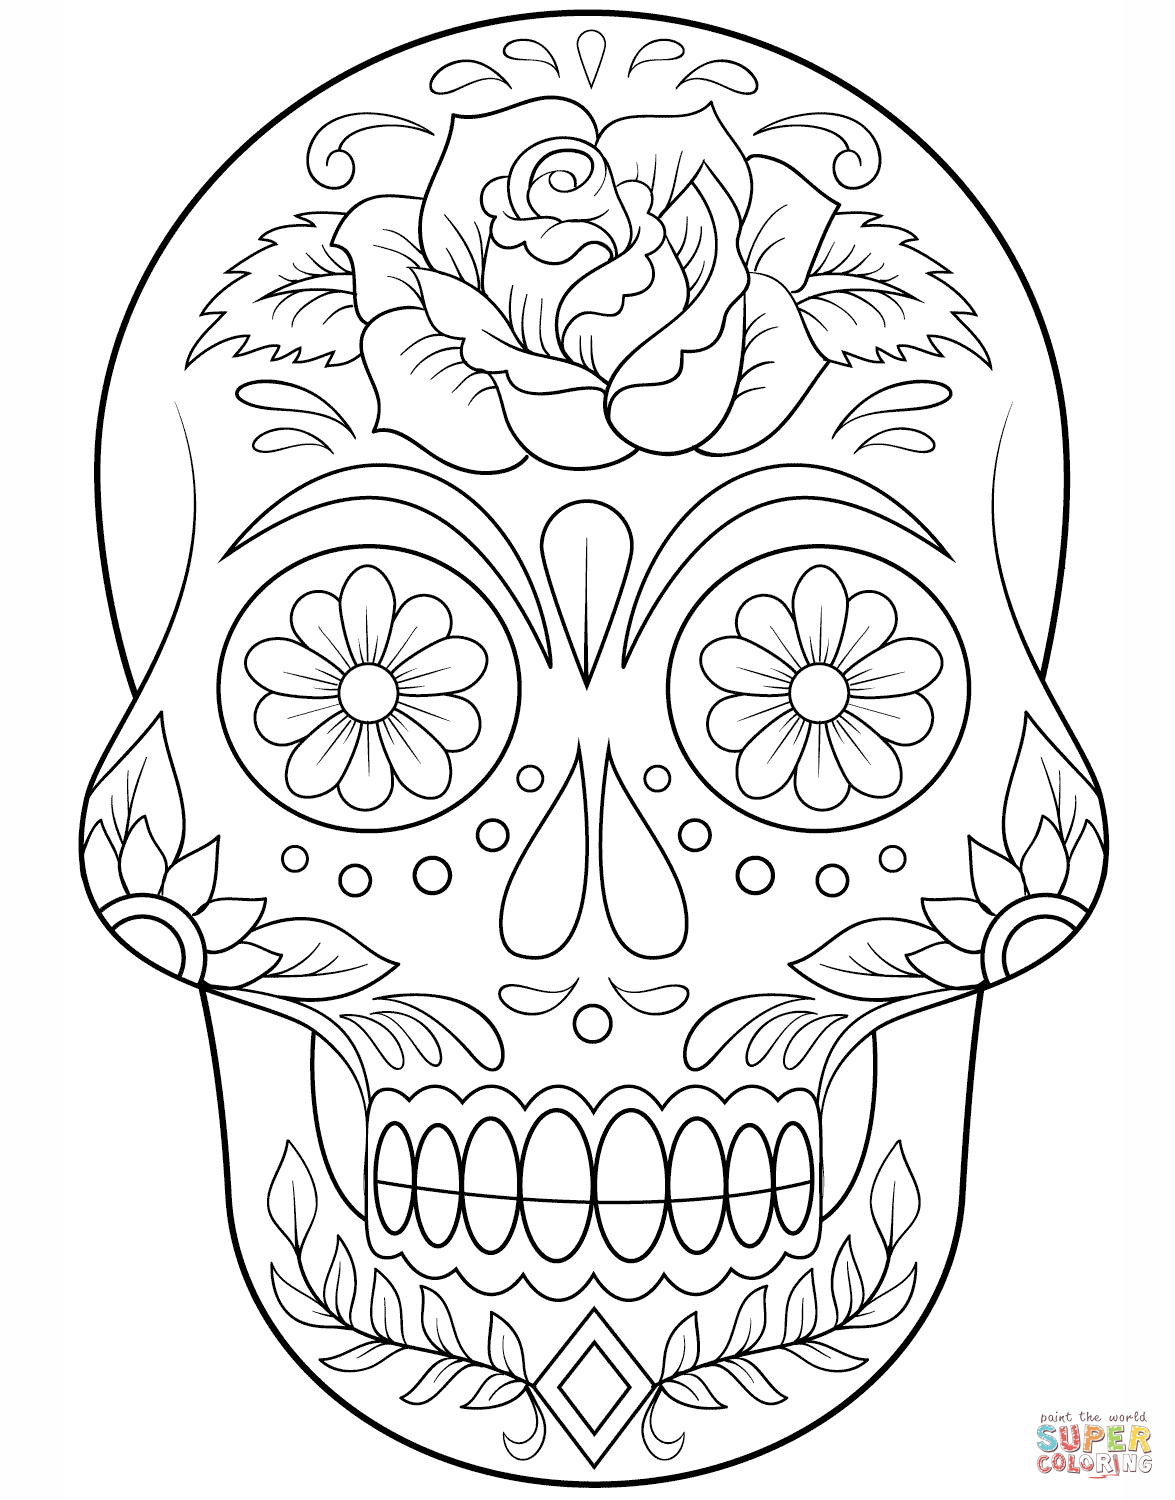 Sugar Skull with Flowers | Super Coloring | Bordados | Pinterest ...